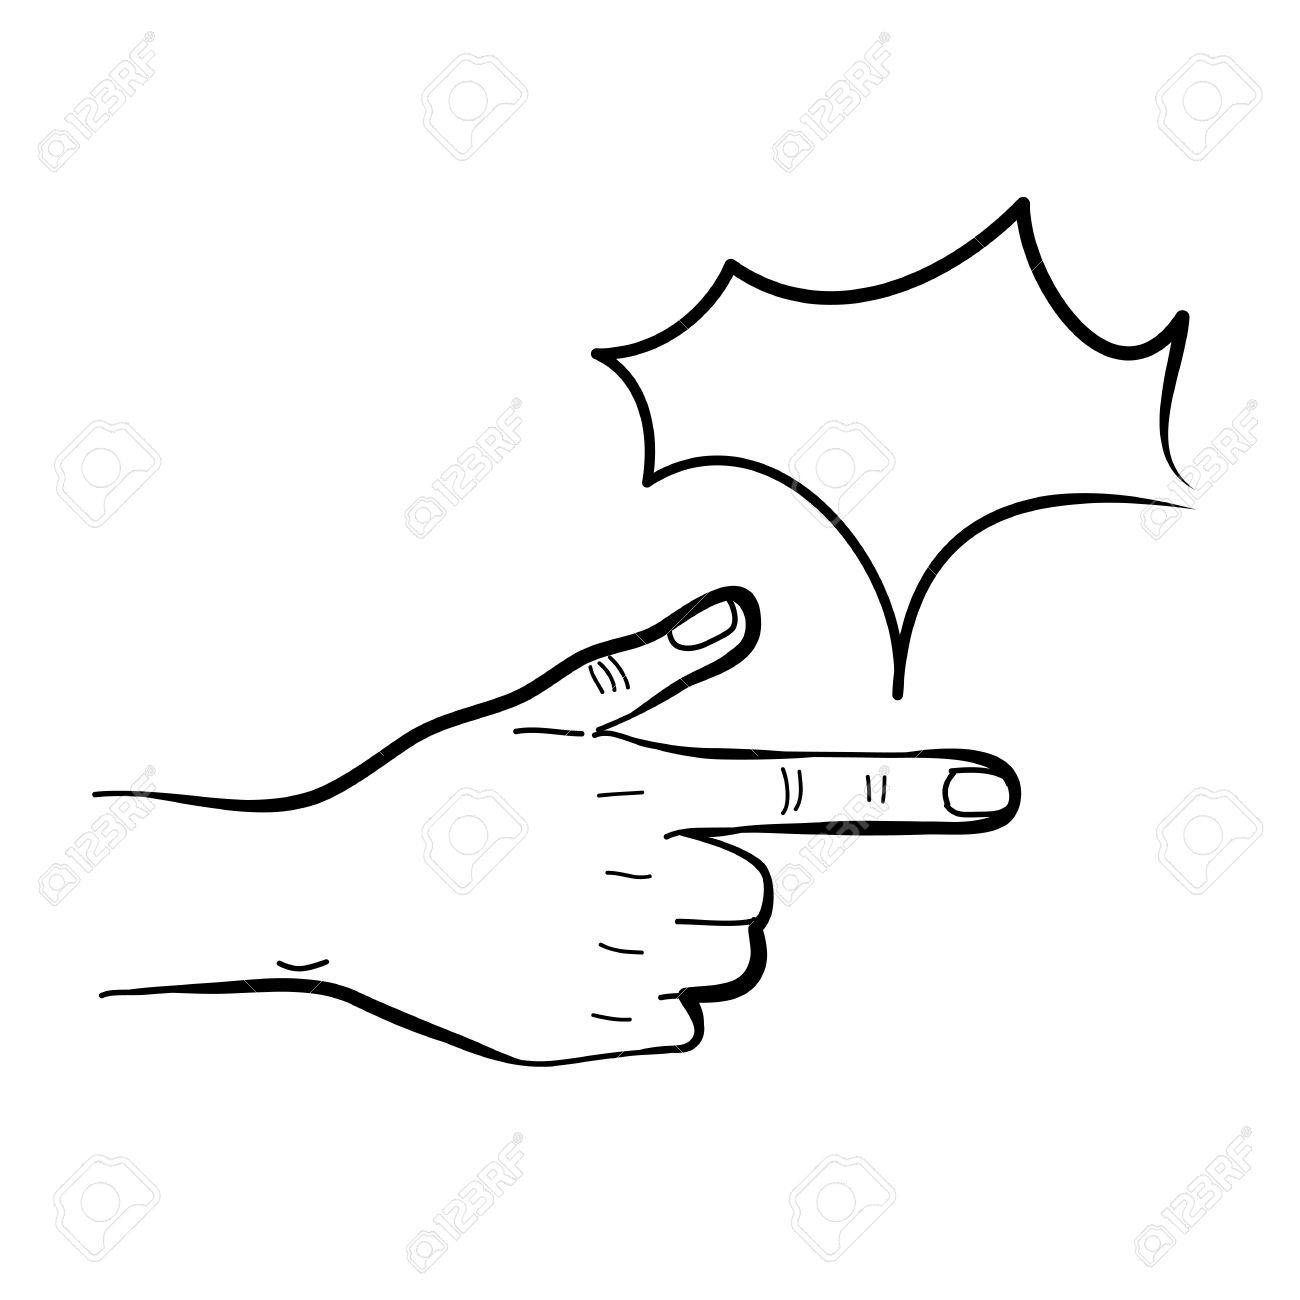 hand drawing freehand sketch hand pointing for design Stock Vector - 18816945